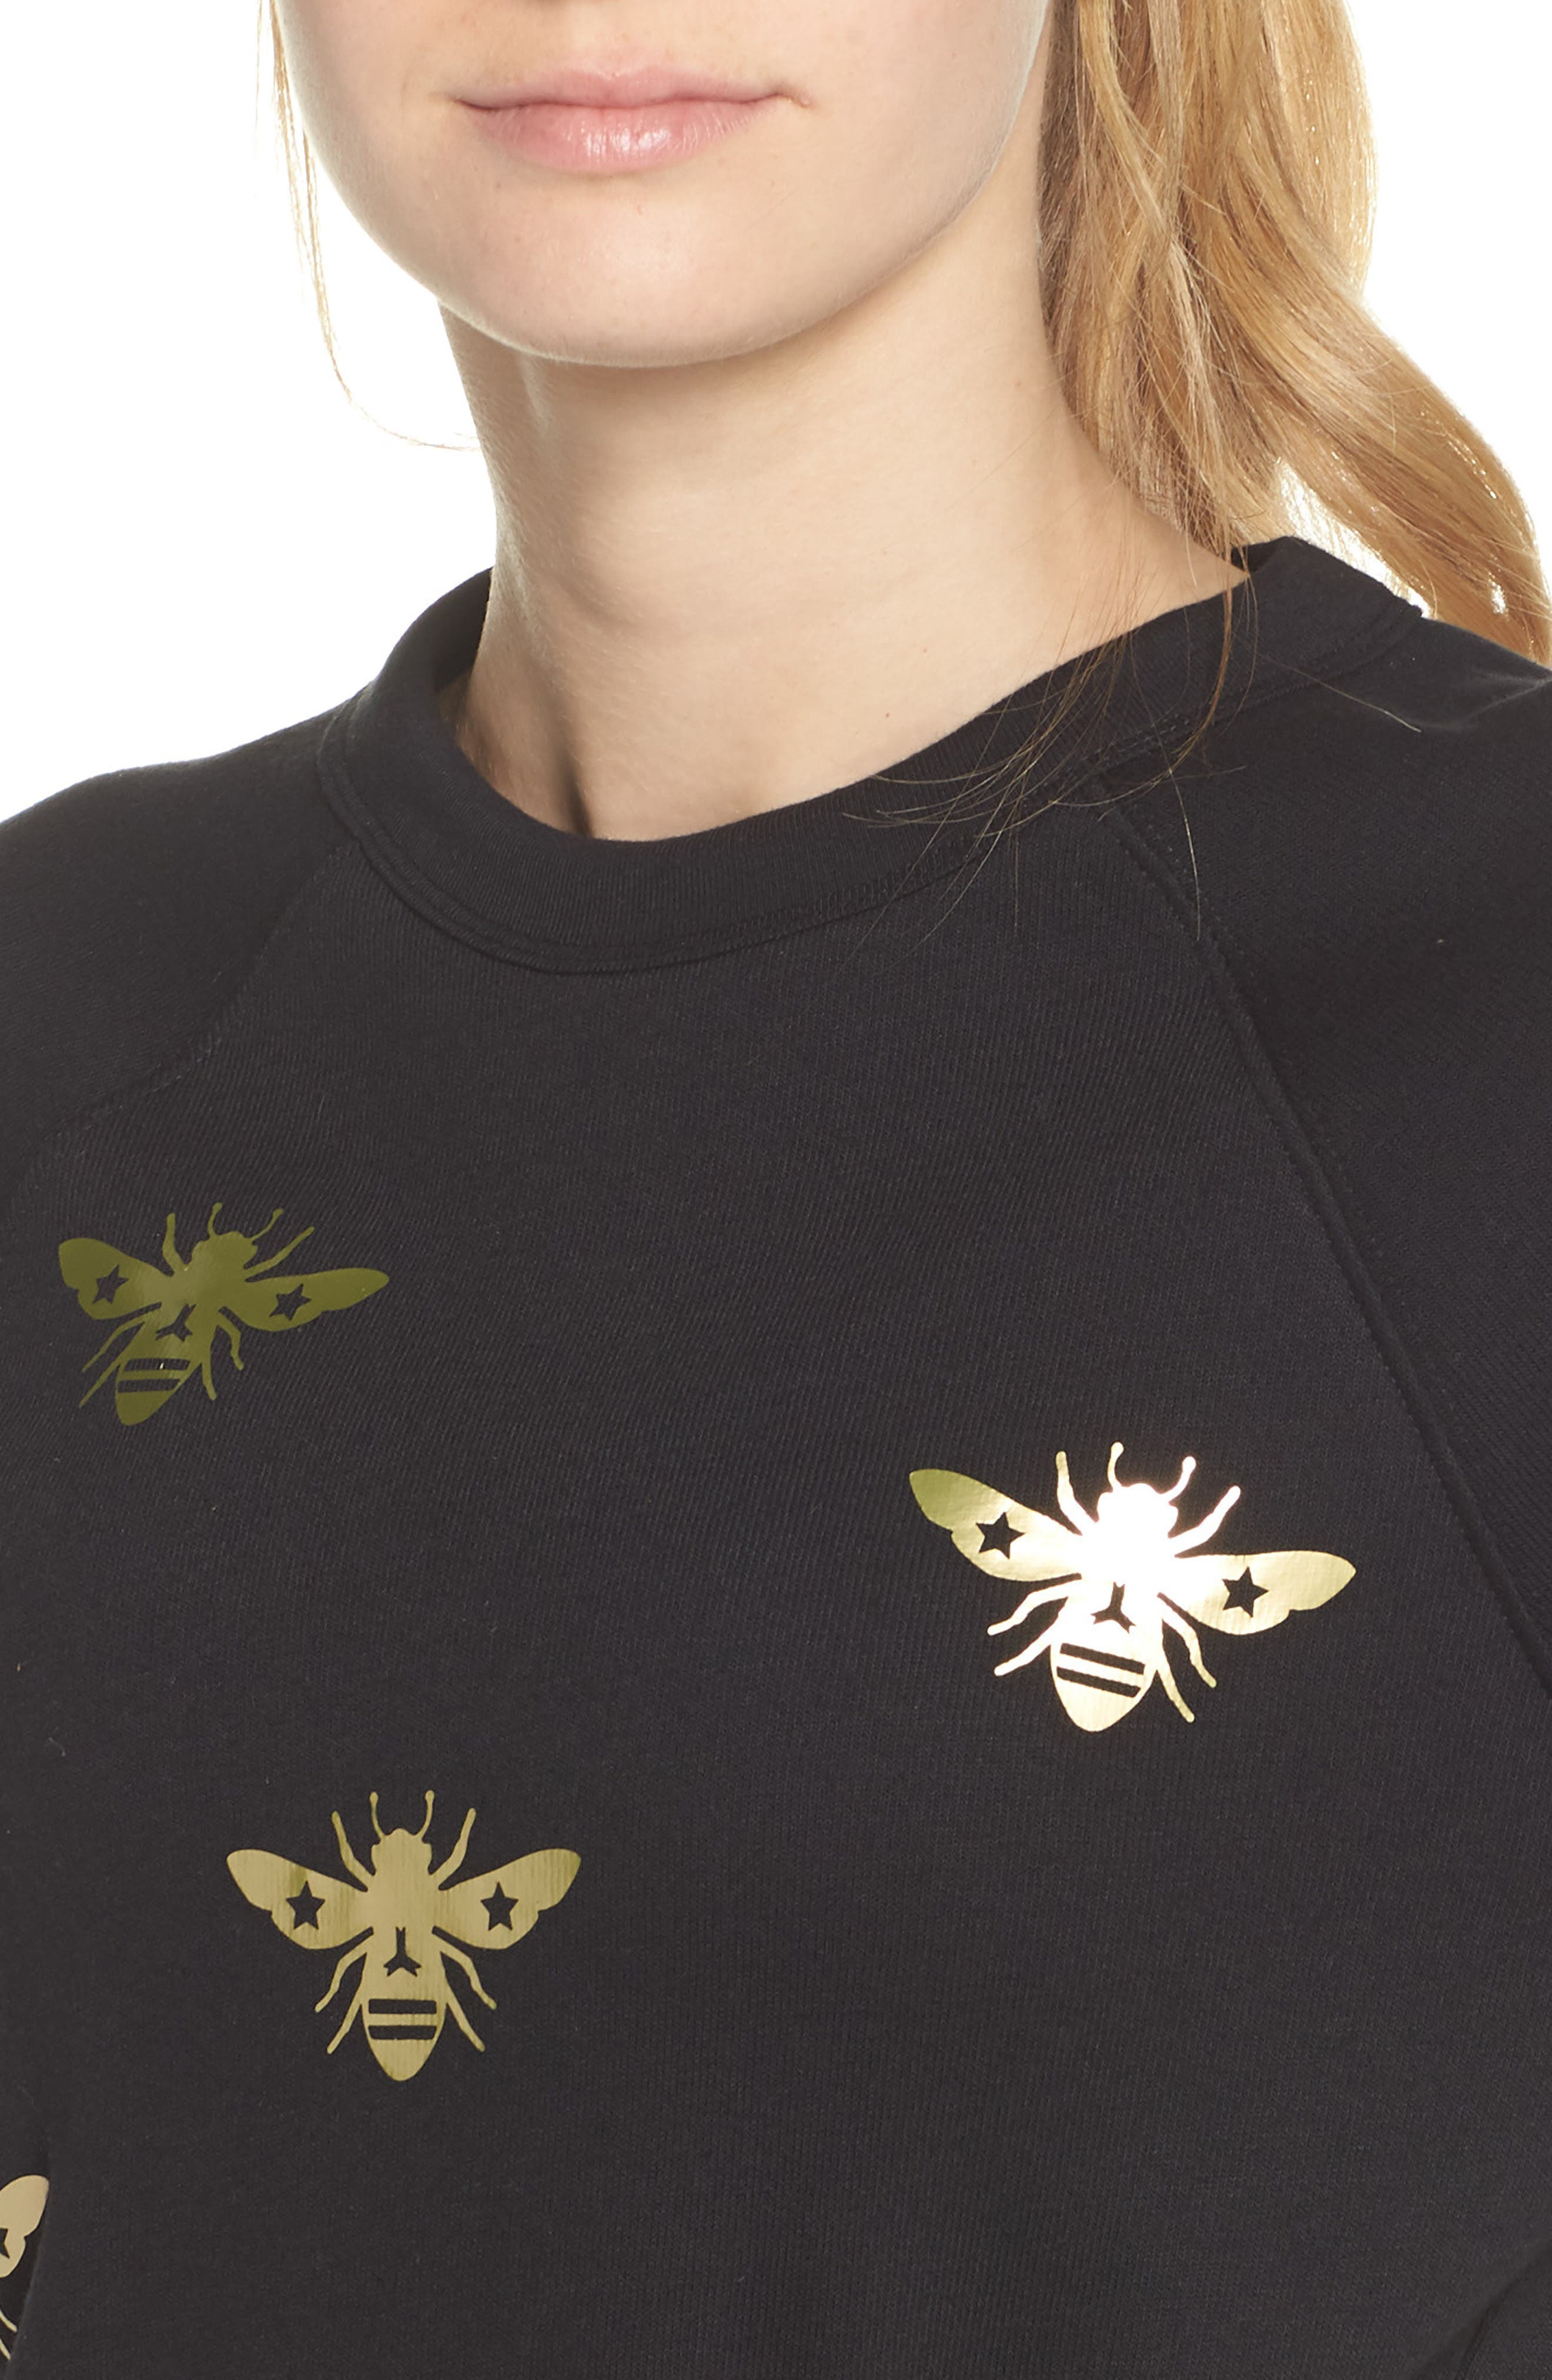 Bee Sweatshirt,                             Alternate thumbnail 4, color,                             Nero/ Gold